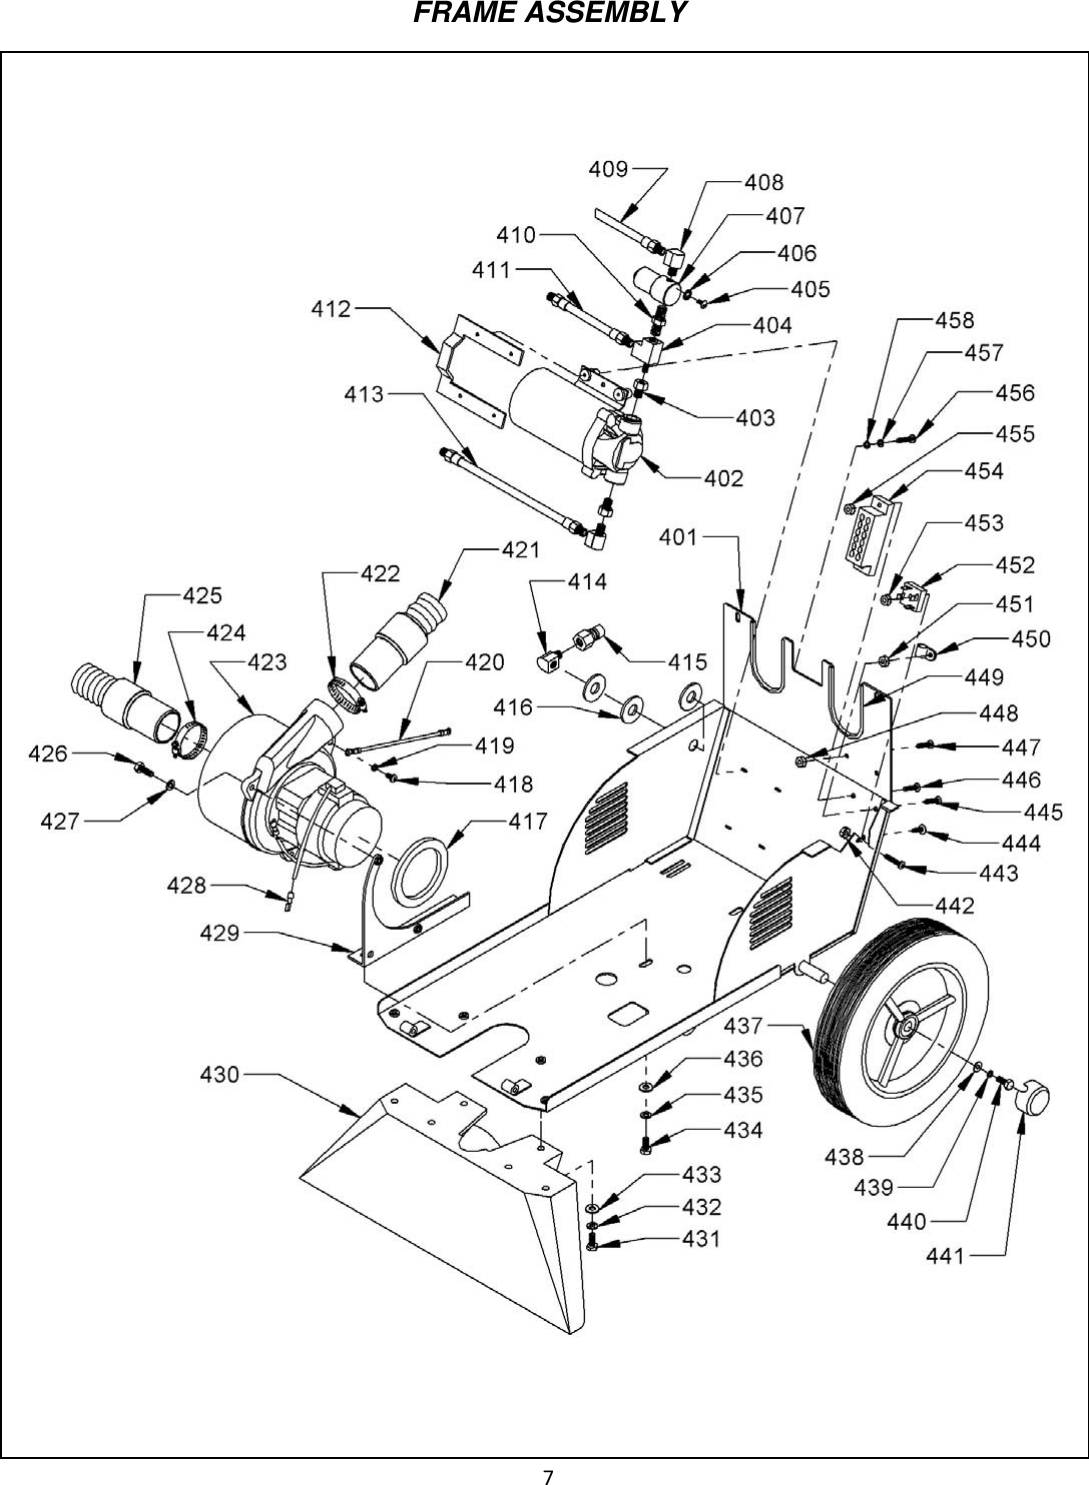 9094818 stallion 818 sc illustrated parts book nss 818sc carpet NSS Predator Carpet Extractor Parts page 7 of 12 9094818 stallion 818 sc illustrated parts book nss stallion